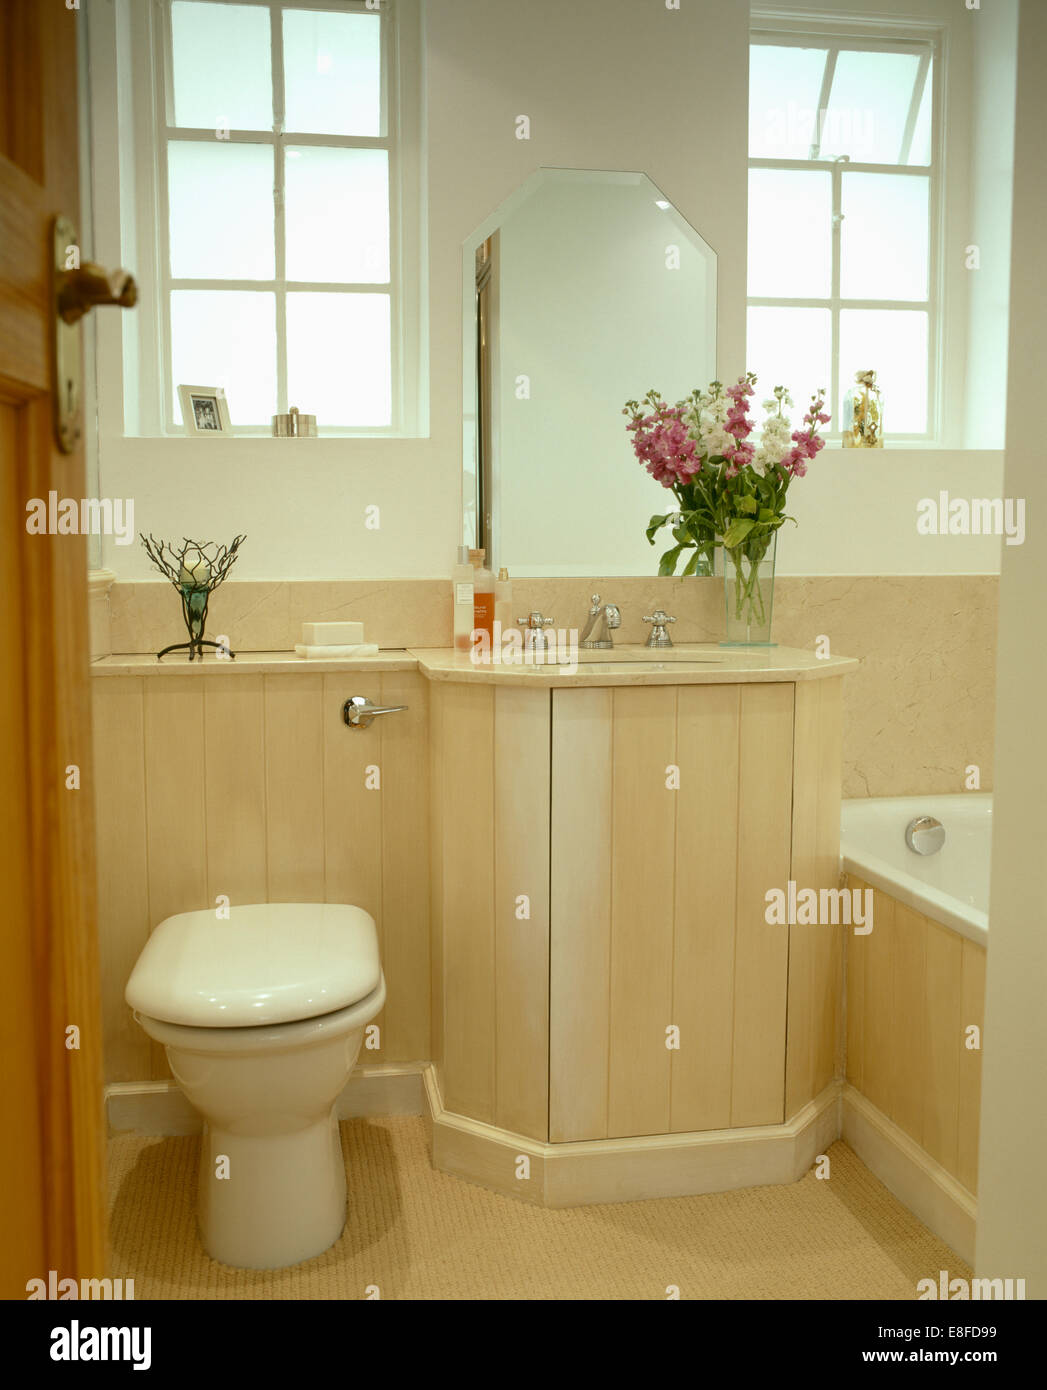 Modern bathroom toilet - Modern Bathroom Toilet Beside Basin In Vanity Unit With Pale Wood Tongue Groove Paneling